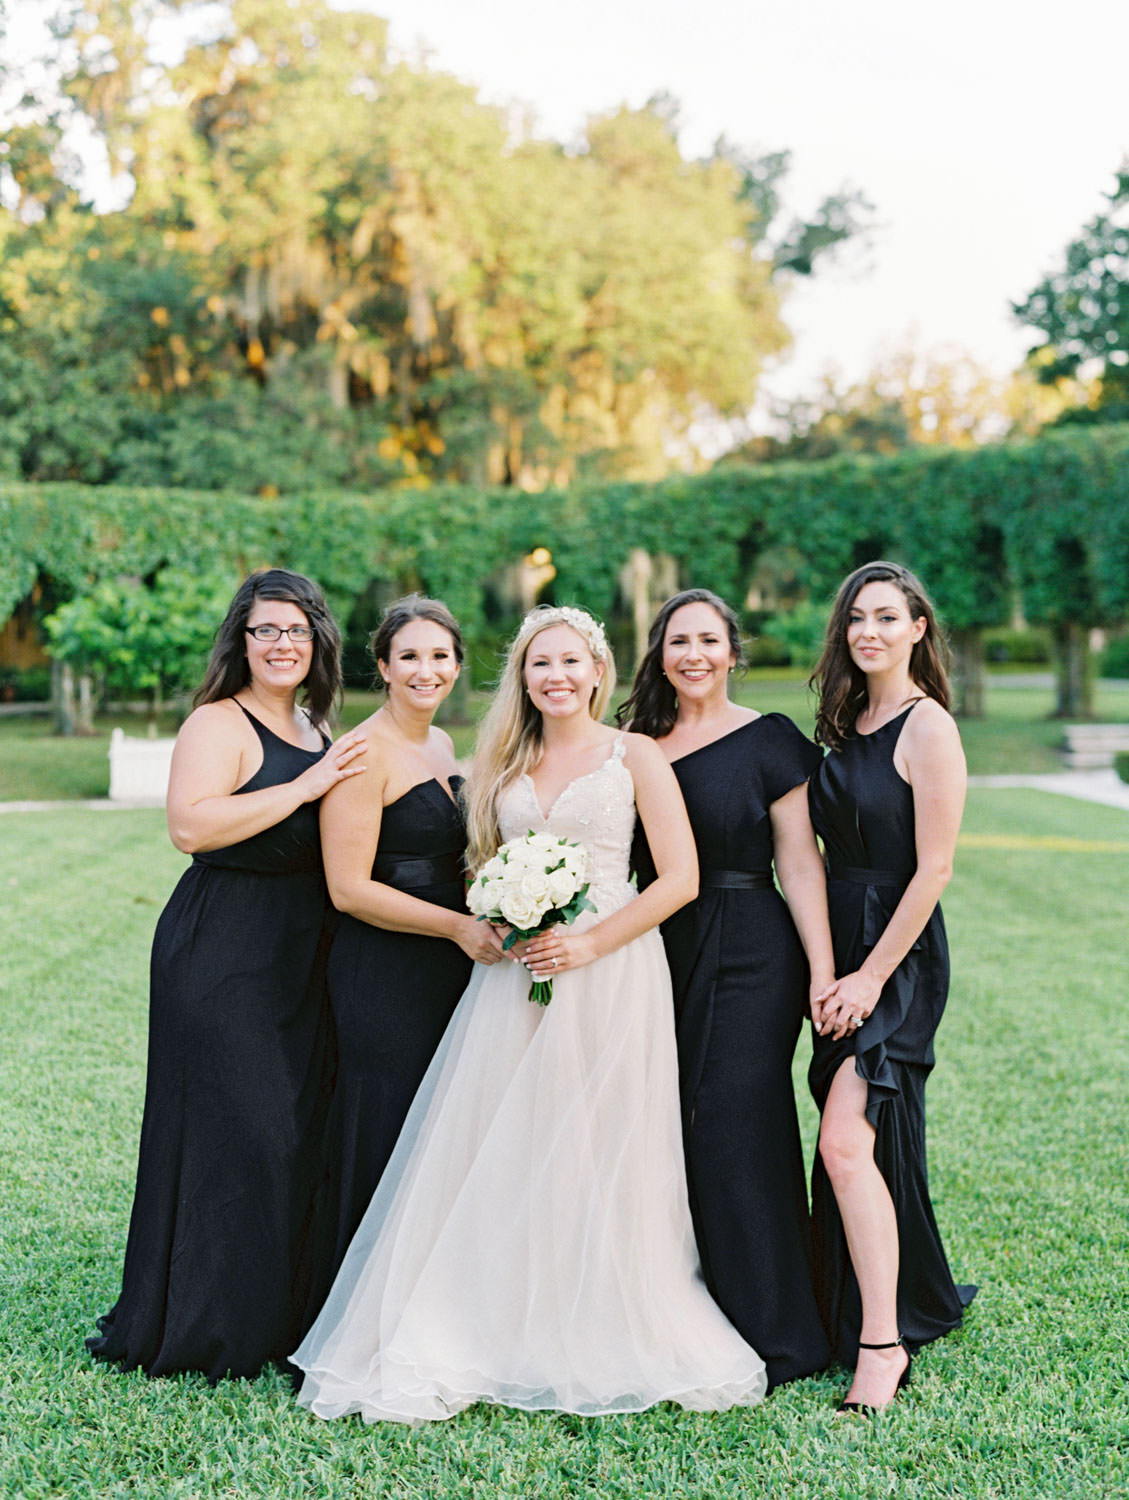 Bride in a champagne gown with a floral tiara headband with her bridesmaids in formal black gowns. Film photography at Jekyll Island Club Resort Wedding by Cavin Elizabeth Photography